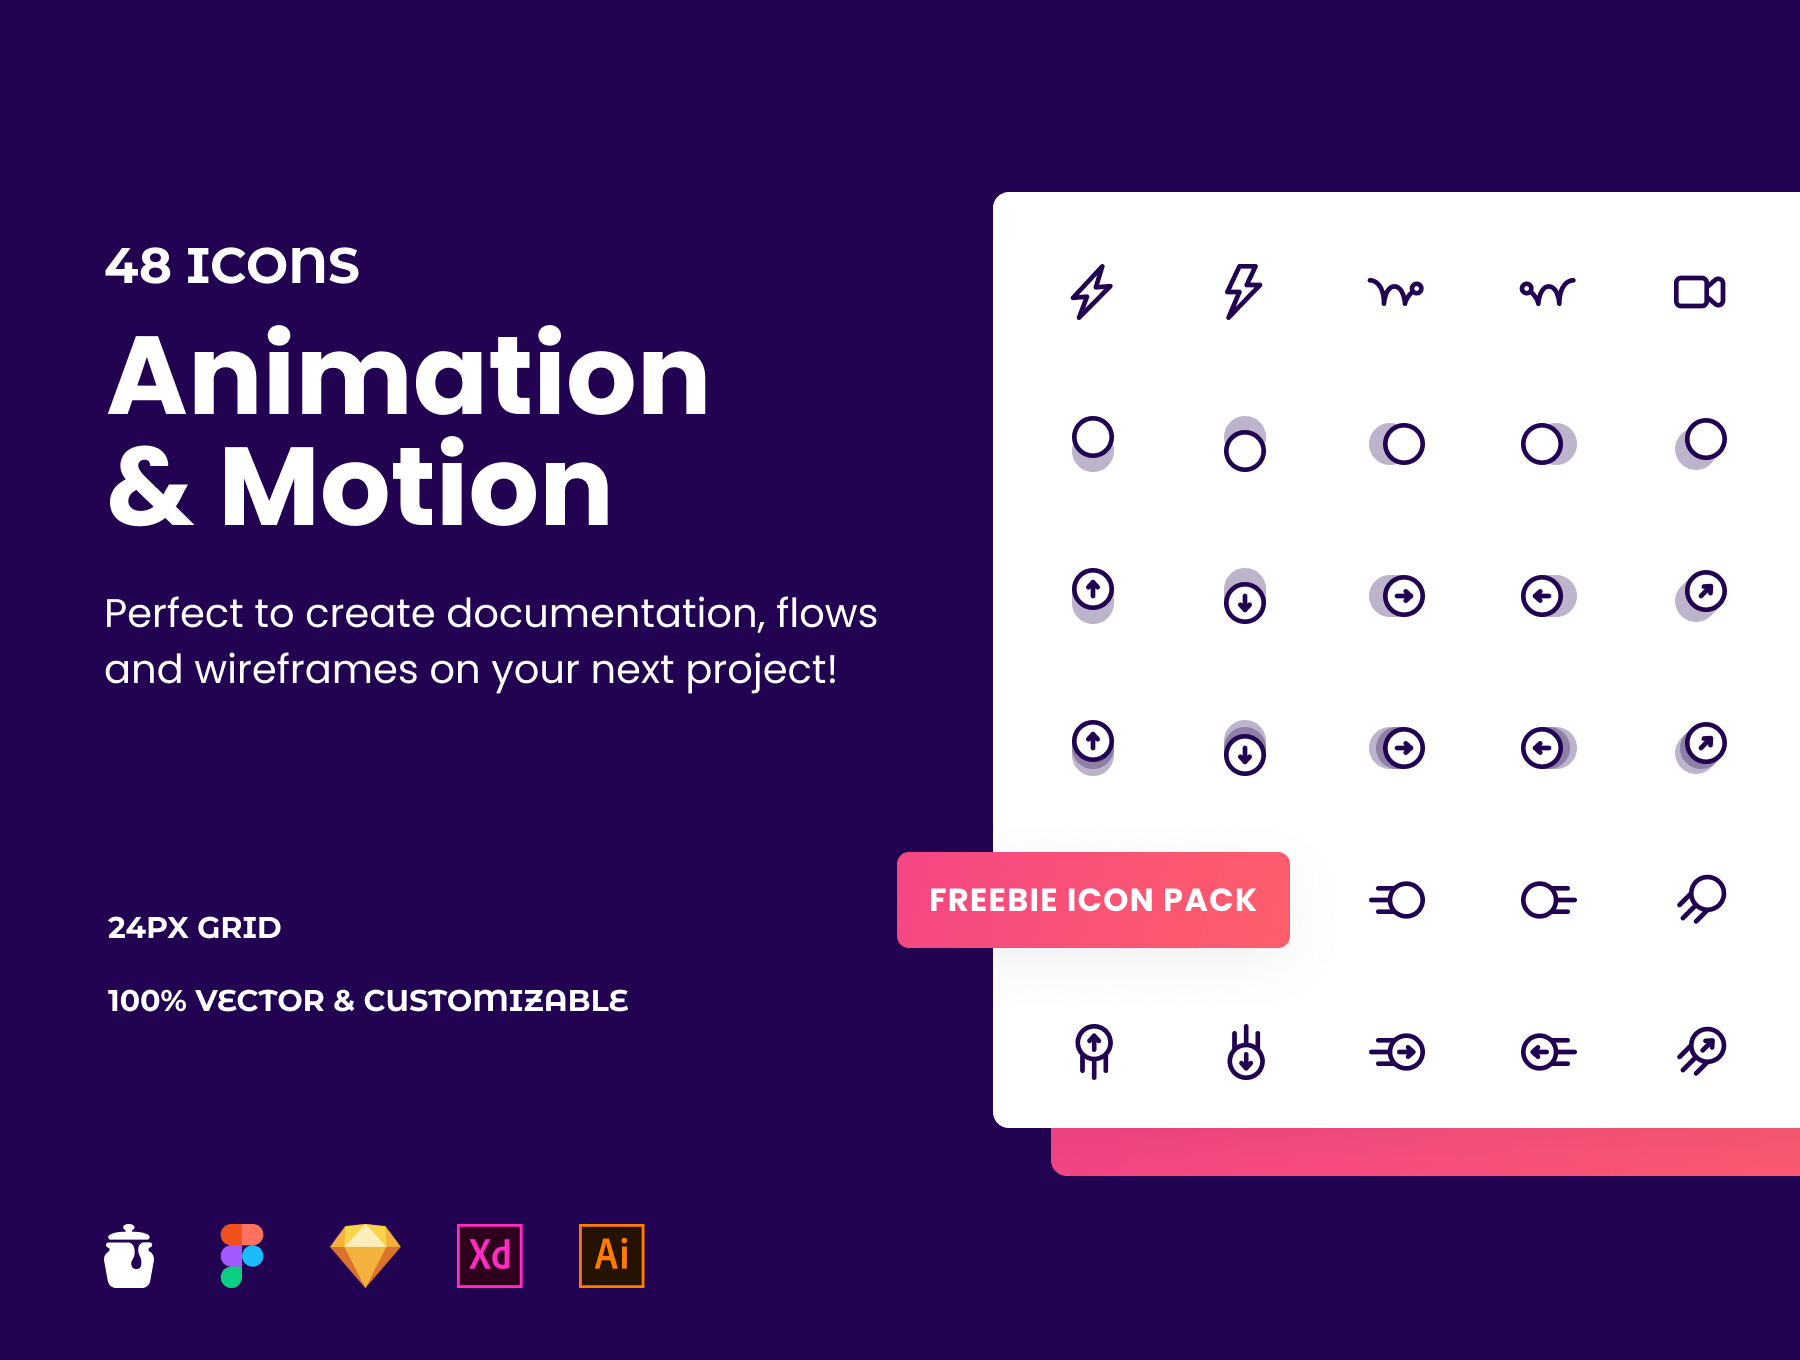 animation and motion icons